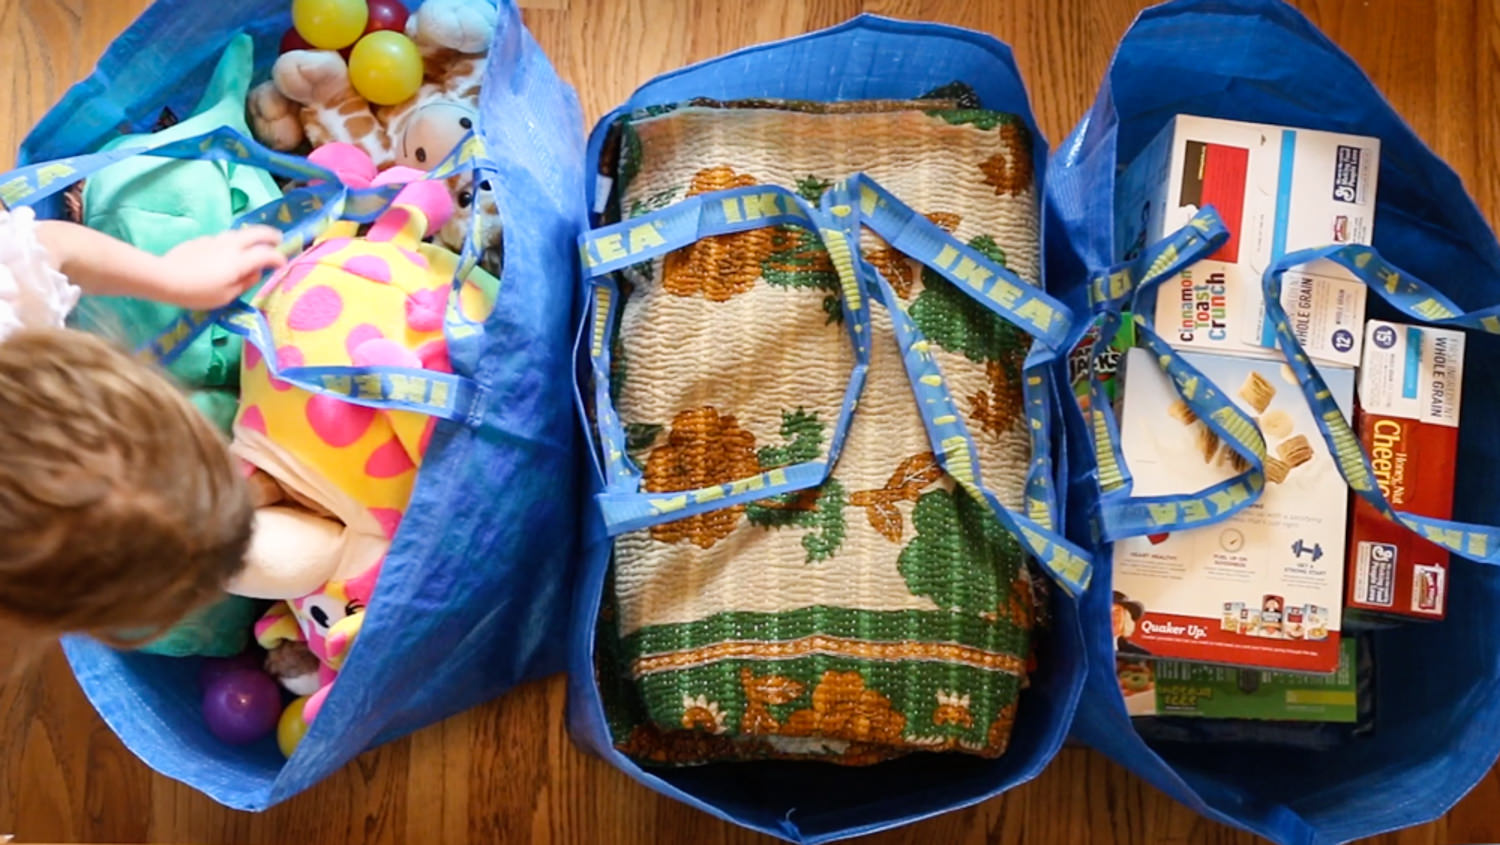 This is how to pack big bags. For more tips, click our packing tips to use for moving!